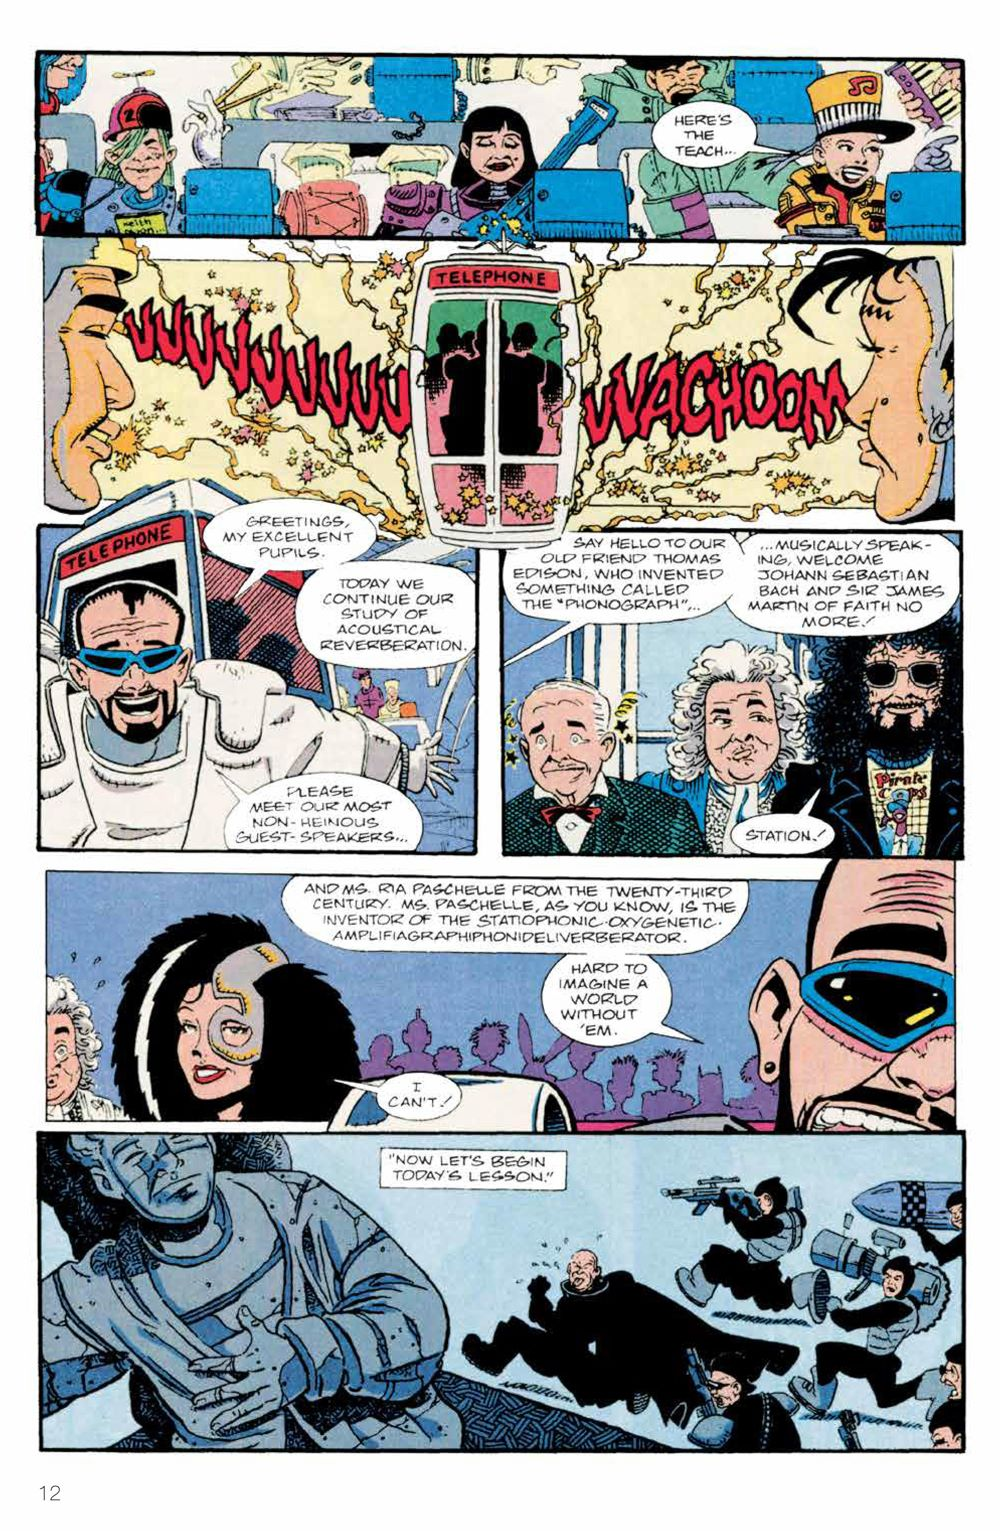 BillTed_Archive_SC_PRESS_14-1 ComicList Previews: BILL AND TED'S EXCELLENT COMIC BOOK ARCHIVE TP